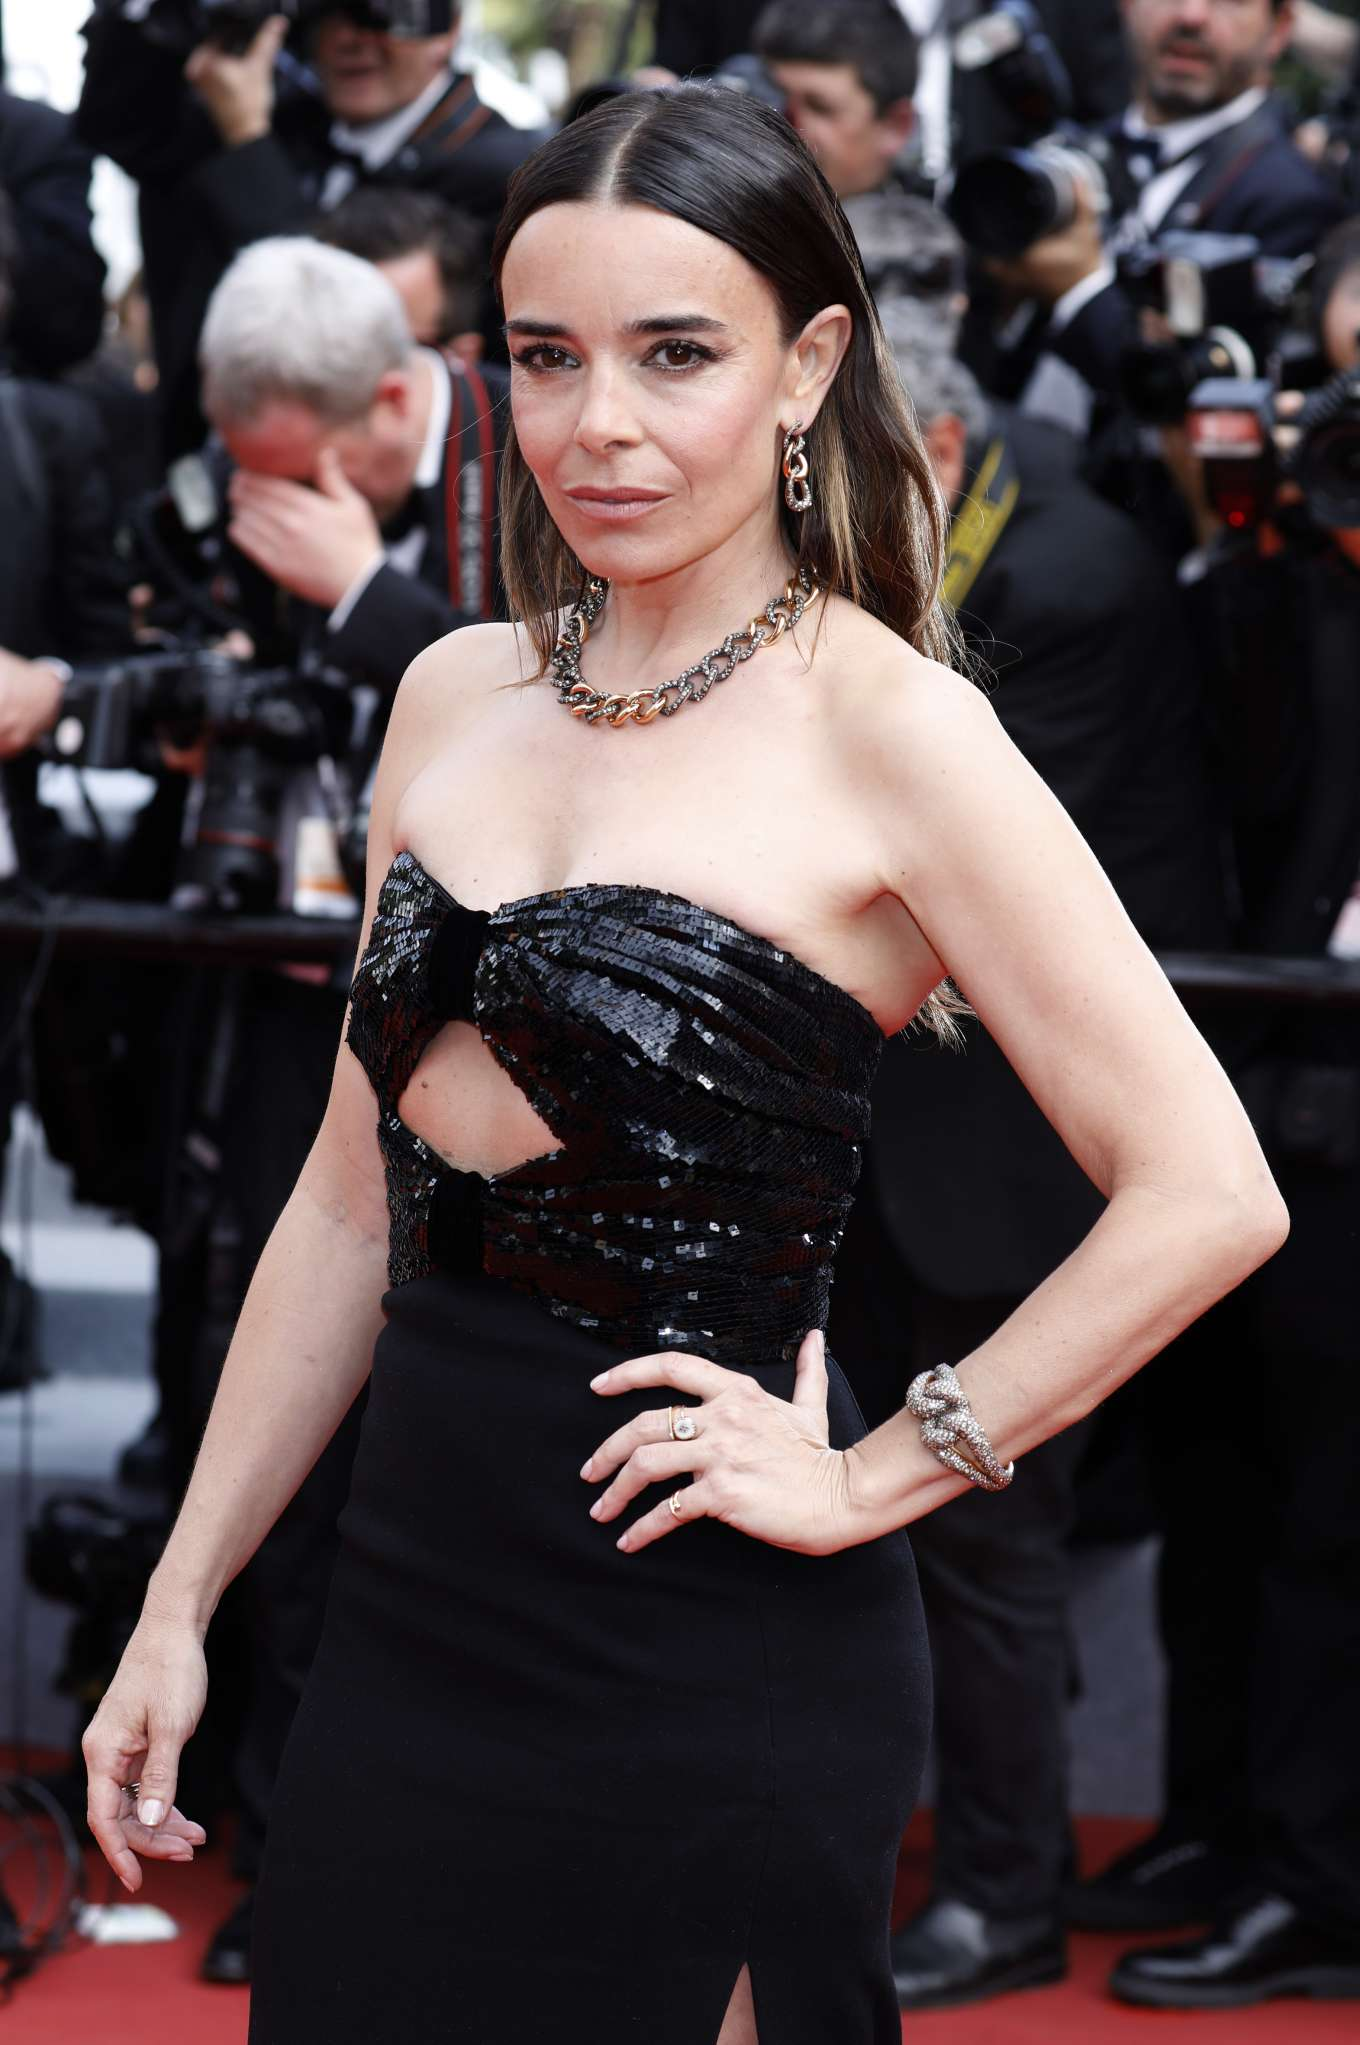 Elodie Bouchez - 'Once Upon A Time In Hollywood' Premiere at 2019 Cannes Film Festival